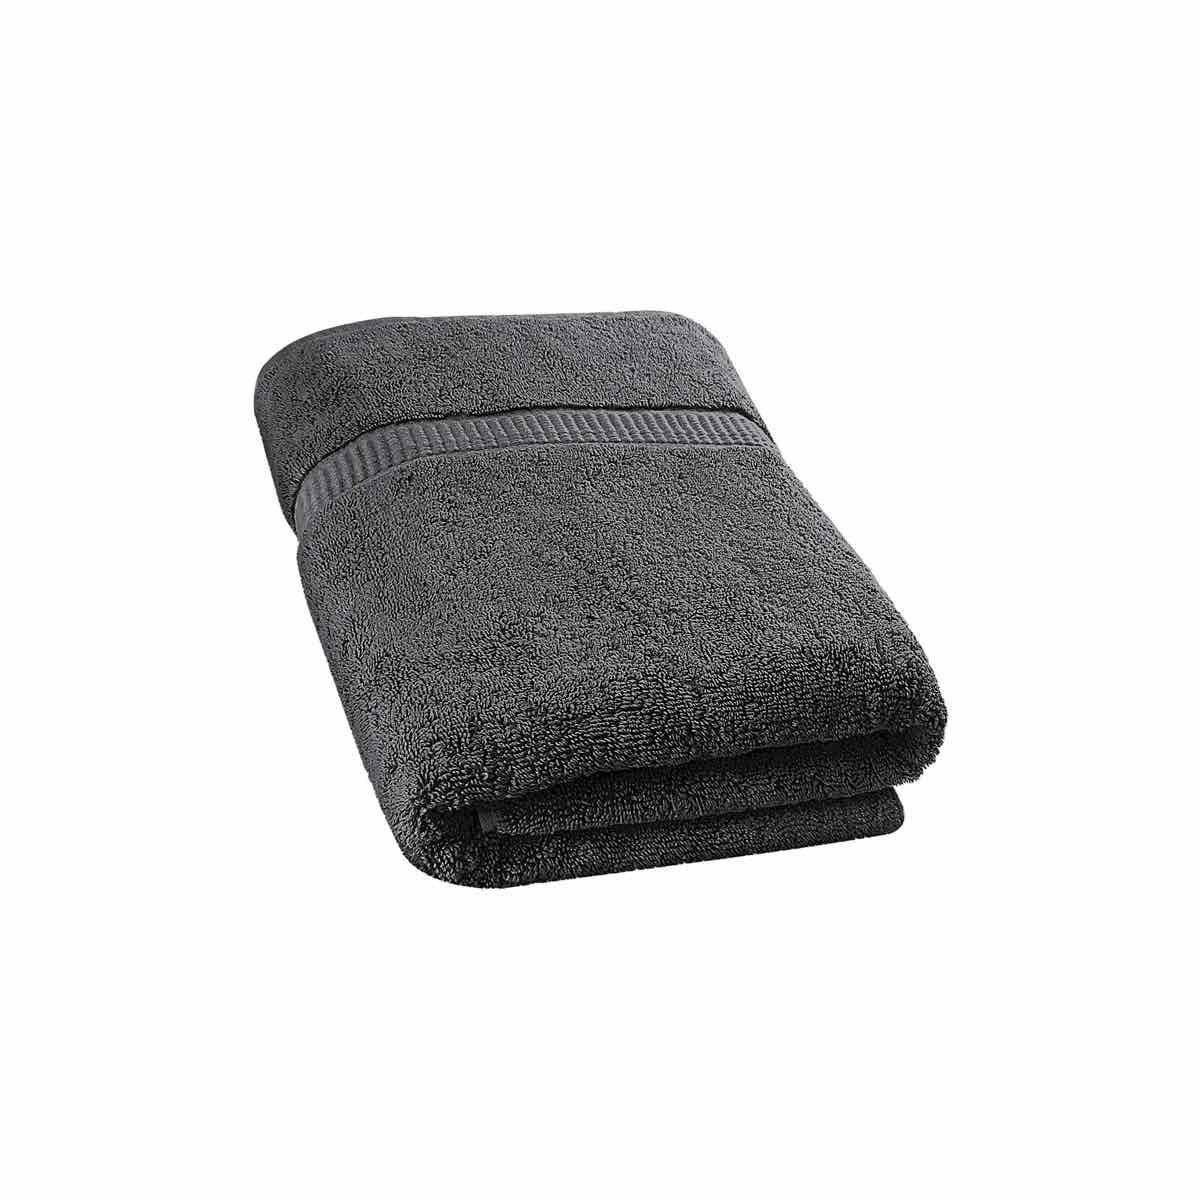 35-Inch-by-70-Inch Soft Cotton Machine Washable Extra Large Bath Towel Gray